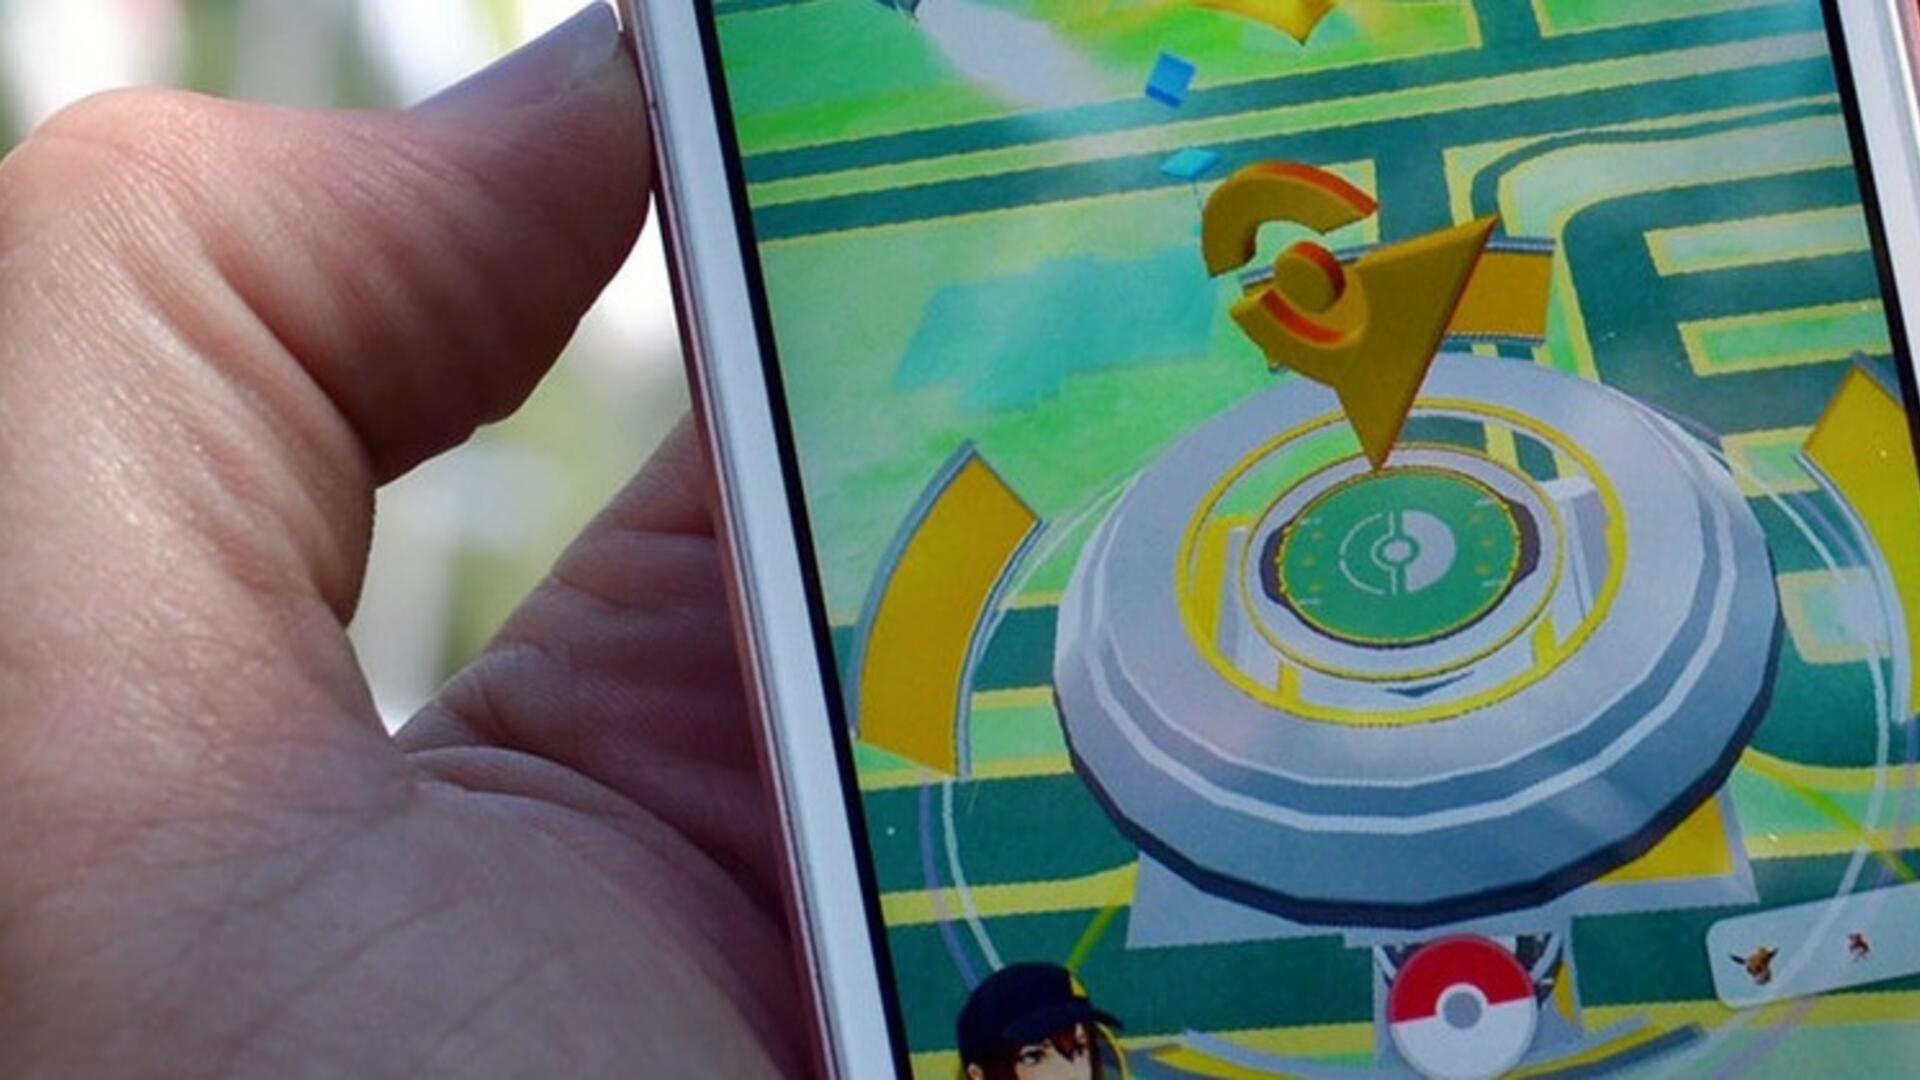 Pokémon GO - How to Map Pokémon in Real Time | USgamer